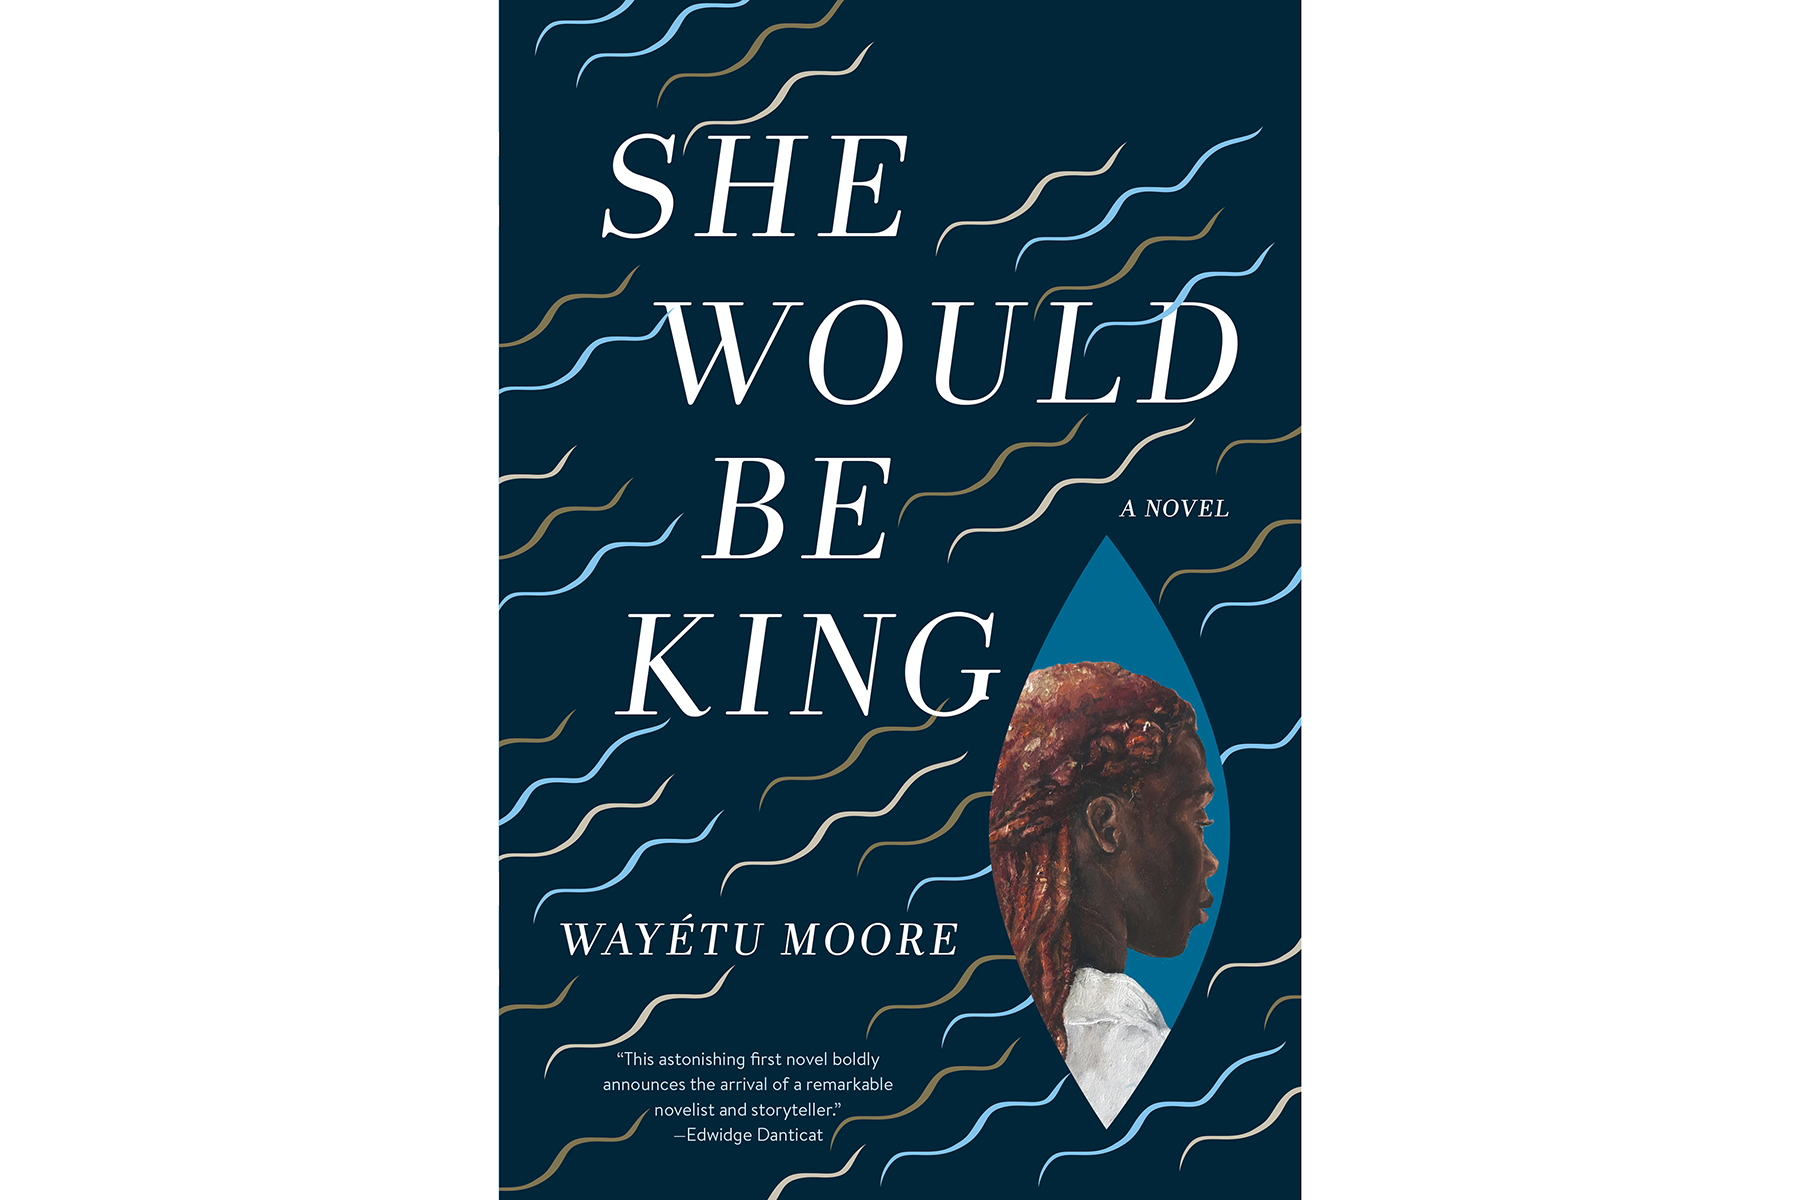 Cover of She Would Be King, by Wayetu Moore